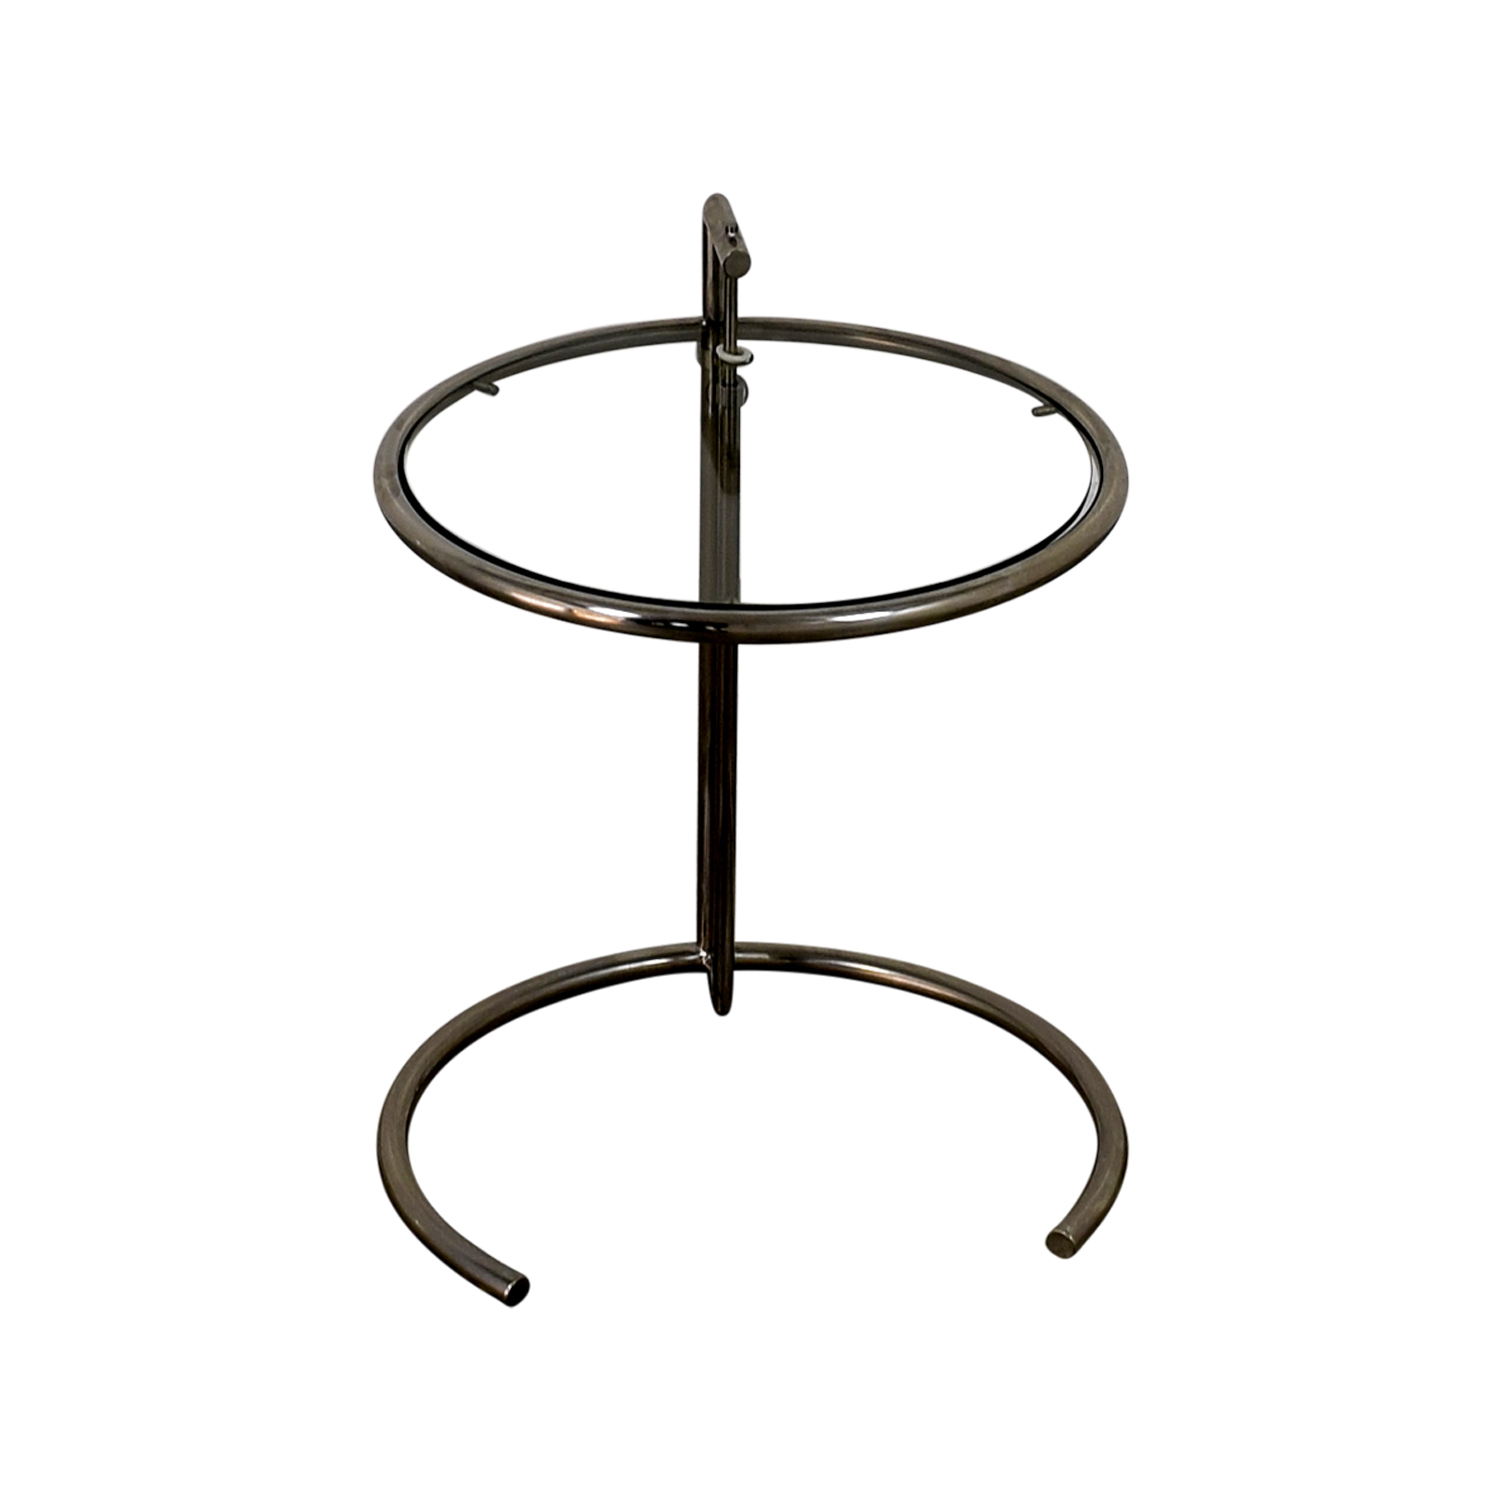 Eileen Gray Eileen Gray Glass and Chrome Side Table for sale